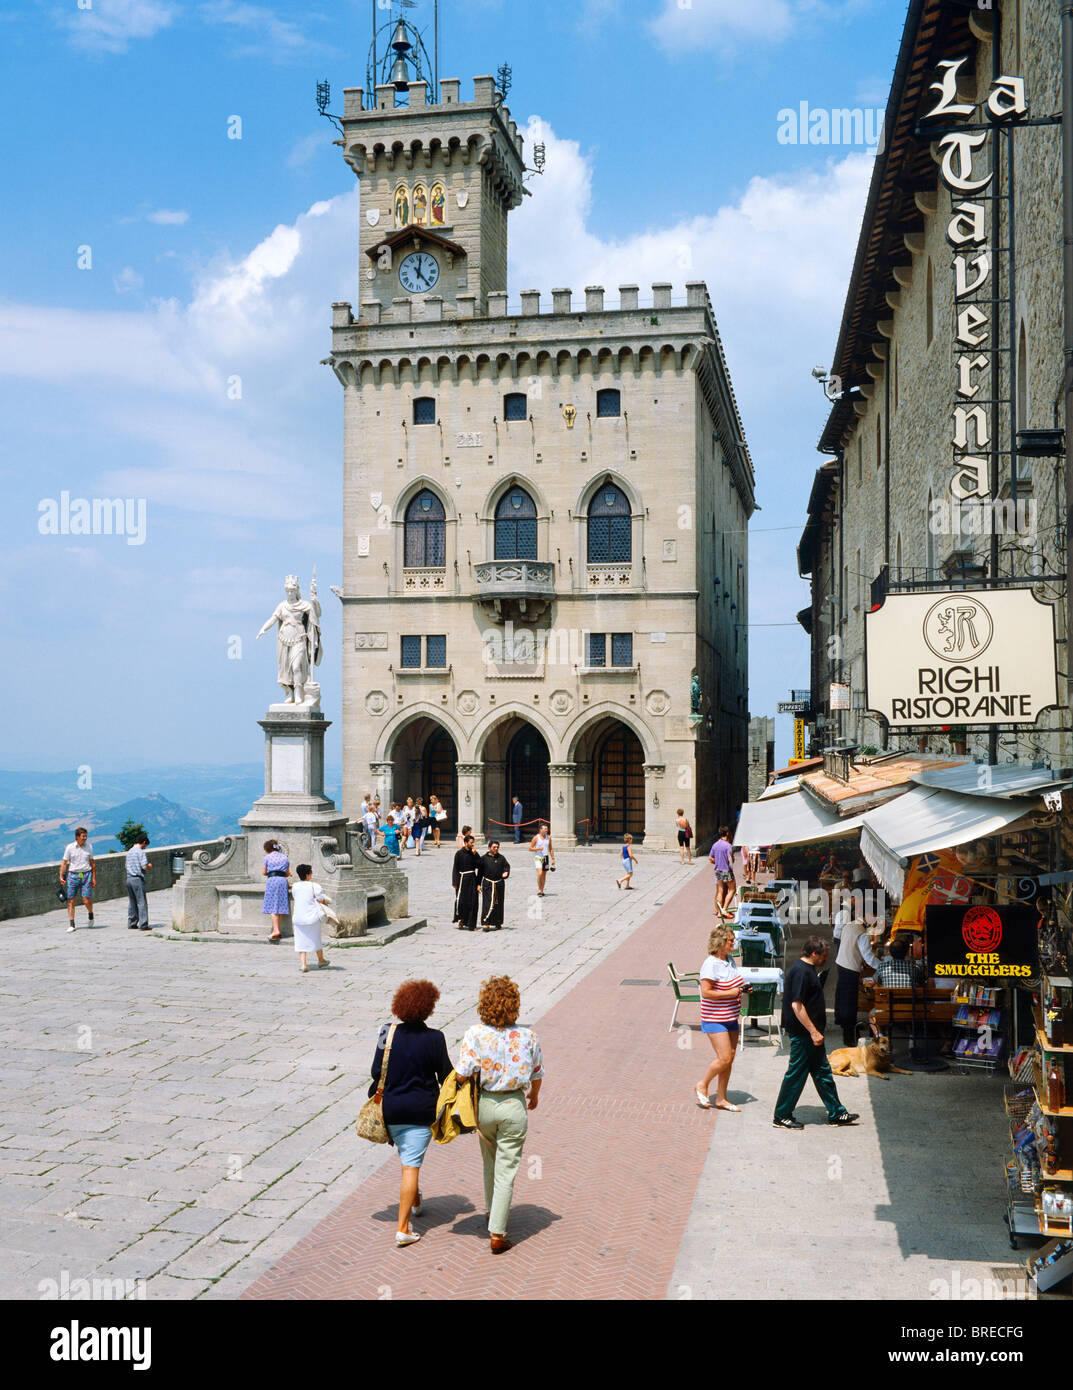 Town Square, Republic of San Marino, Italy - Stock Image